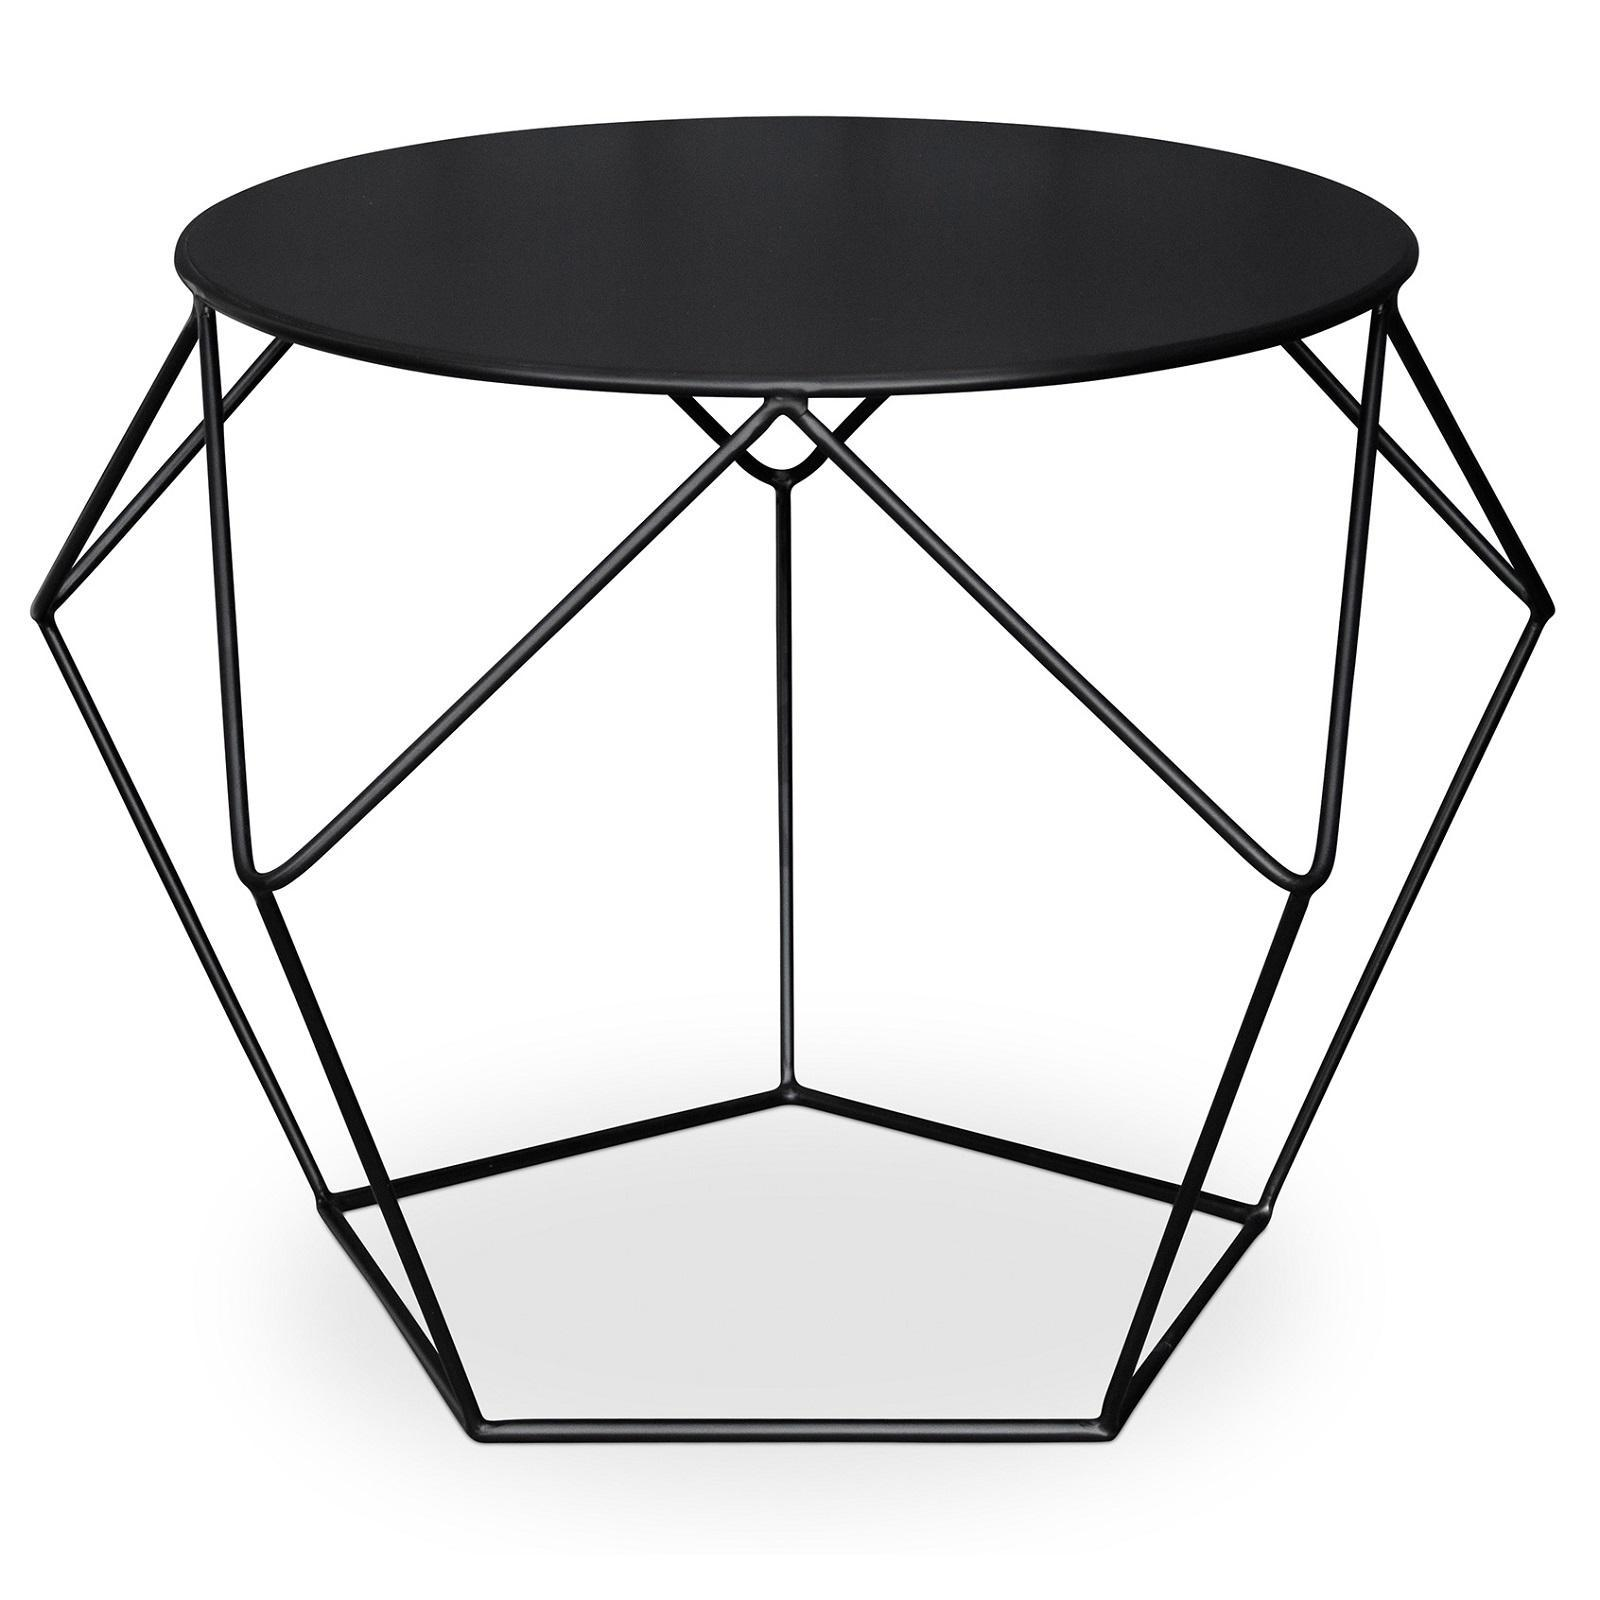 Table d 39 appoint m tal noir diamant - Table d appoint contemporaine ...